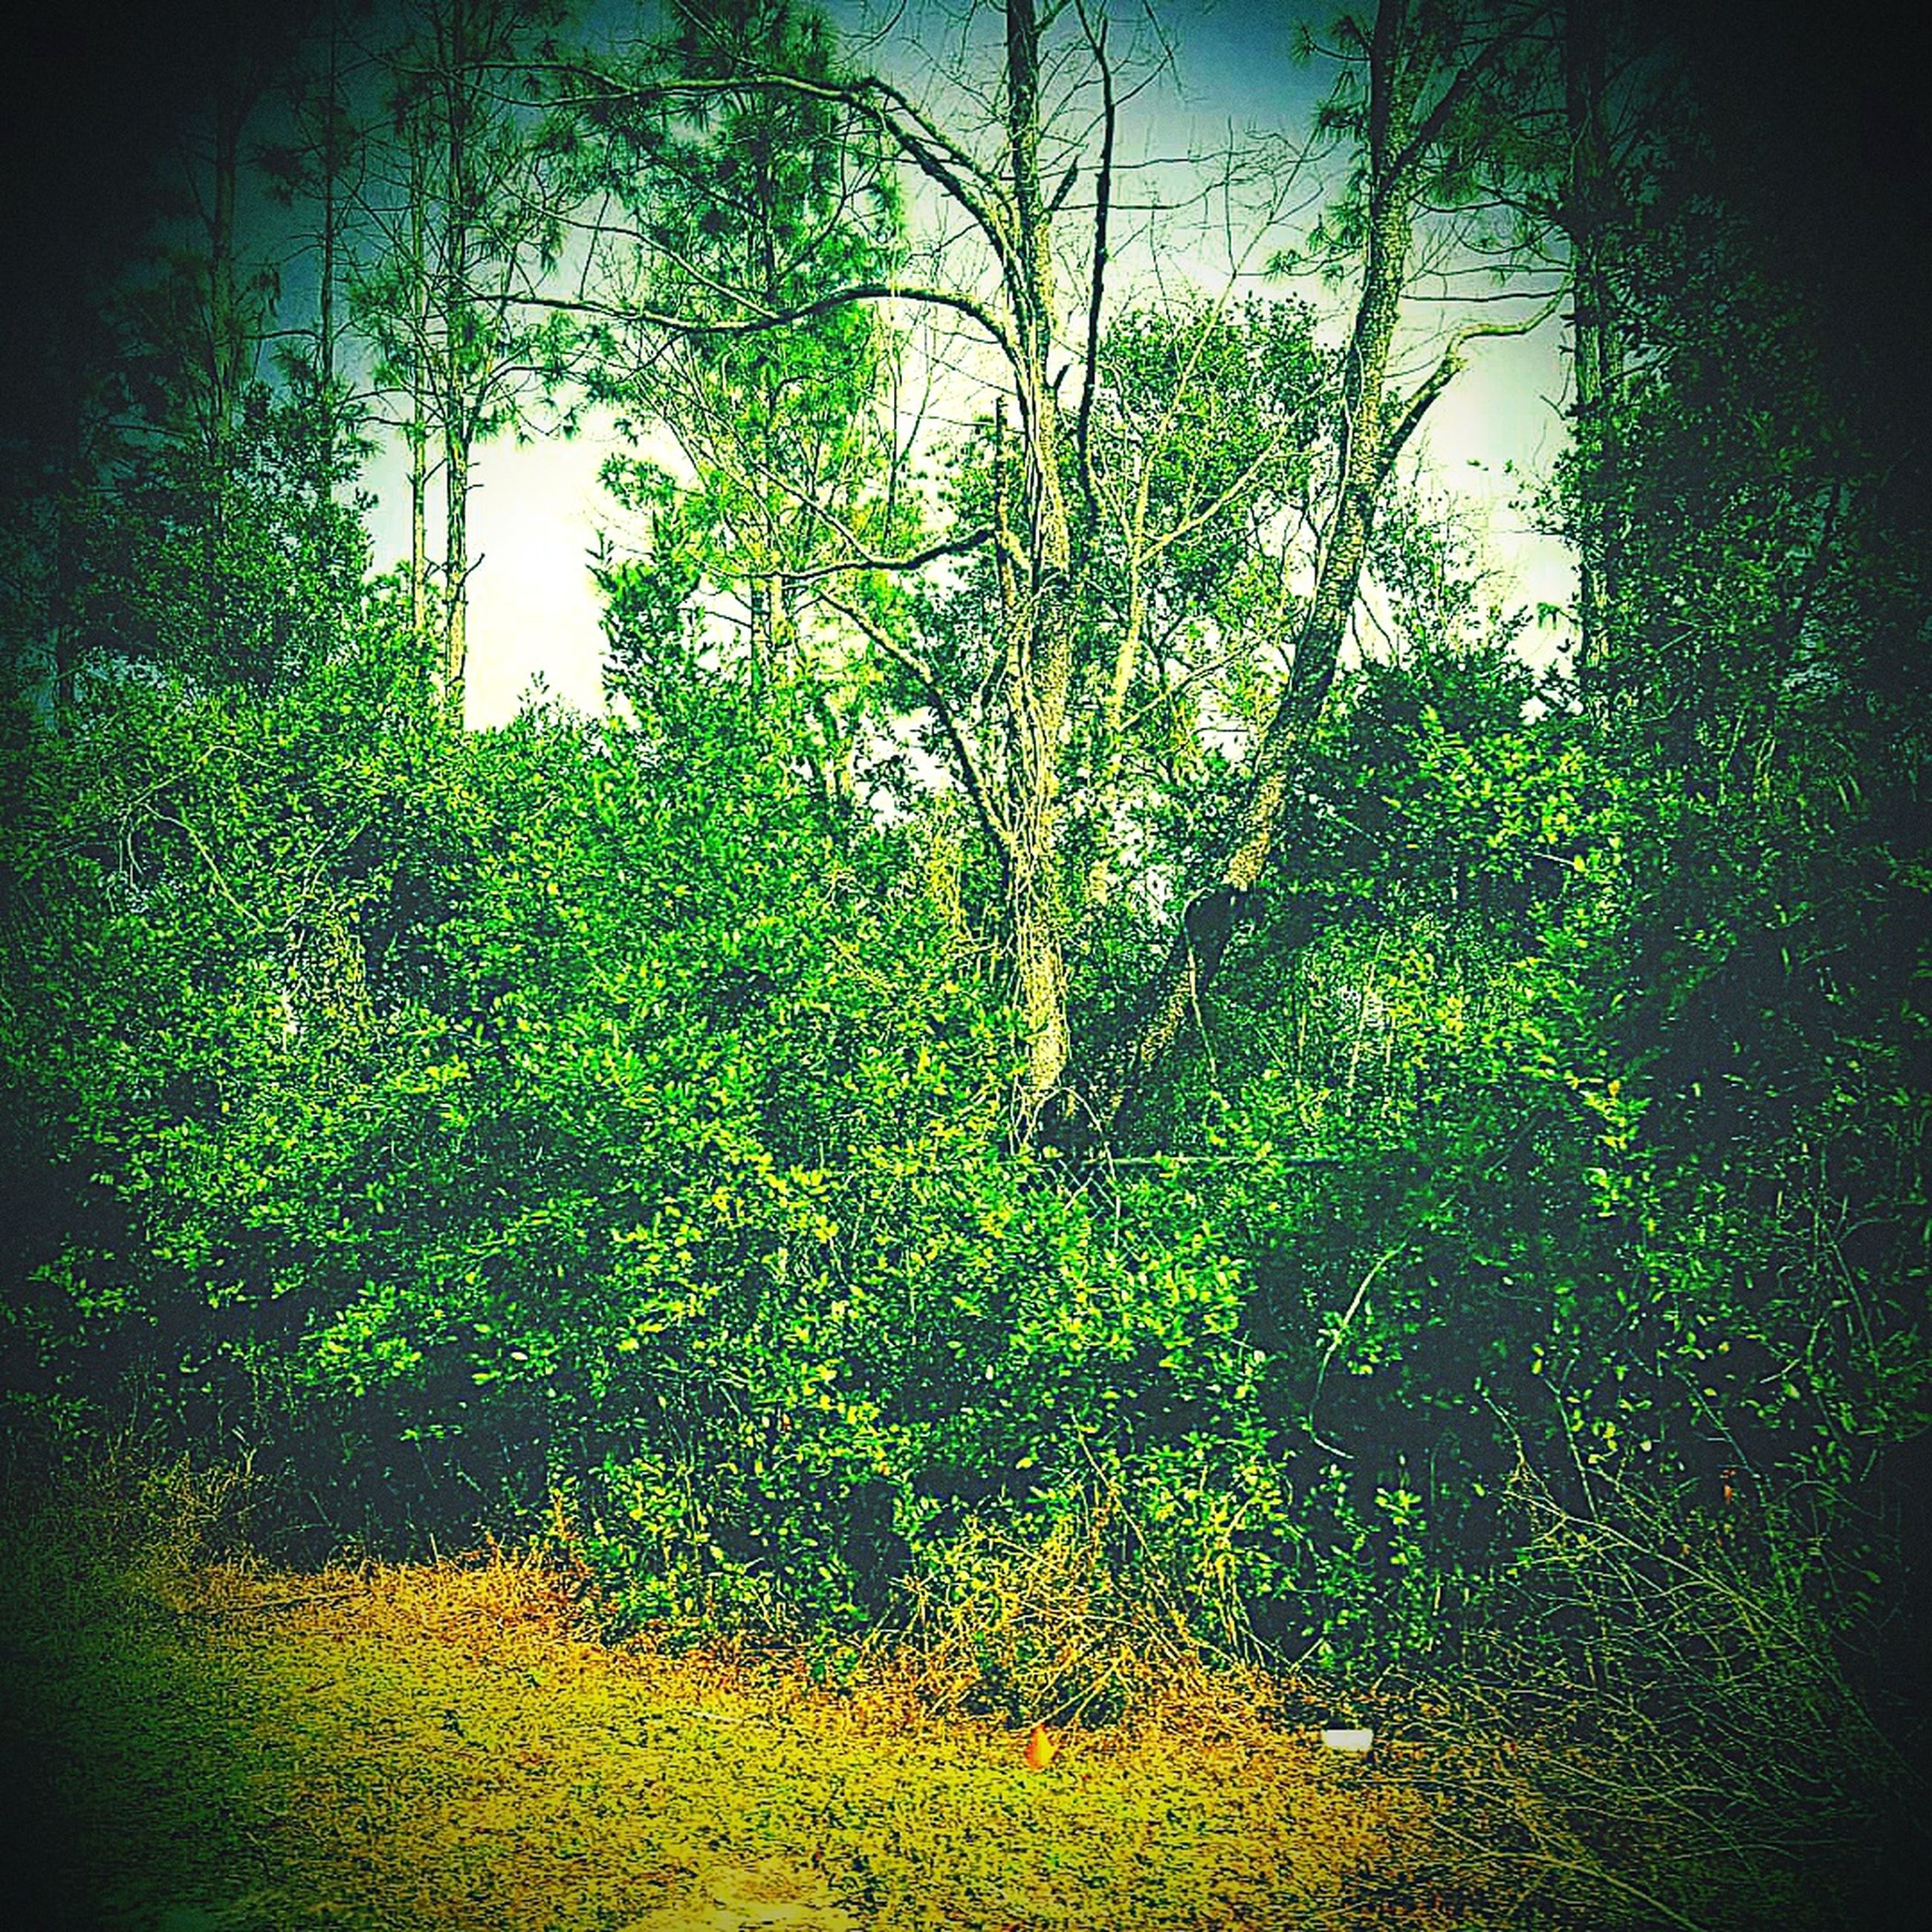 tree, plant, growth, nature, forest, no people, tranquility, land, green color, beauty in nature, day, outdoors, sunlight, vignette, auto post production filter, scenics - nature, branch, green, foliage, tranquil scene